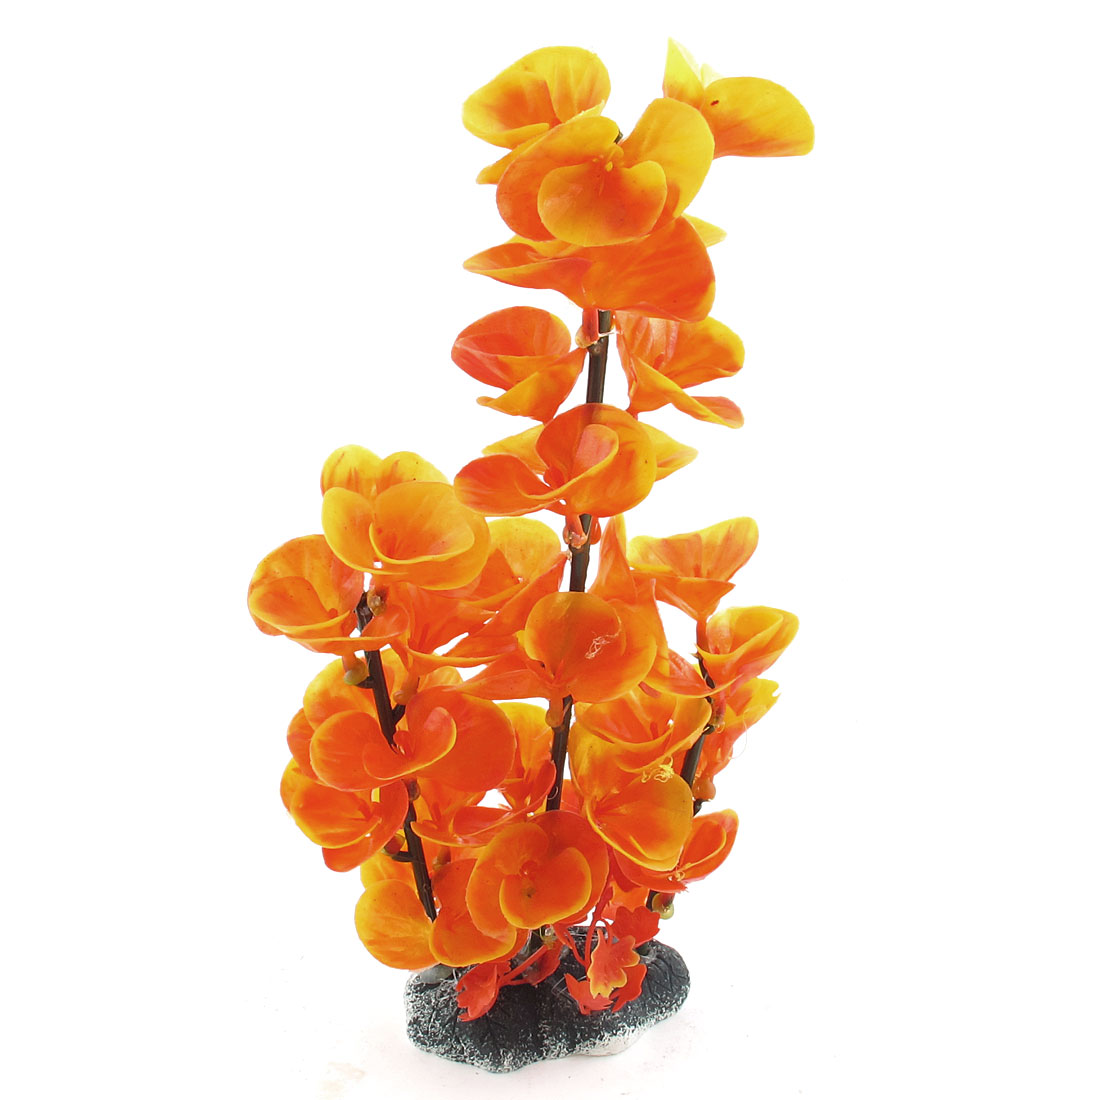 Aquarium poissons Aquarium plastique orange plante aquatique artificielle 26cm haut